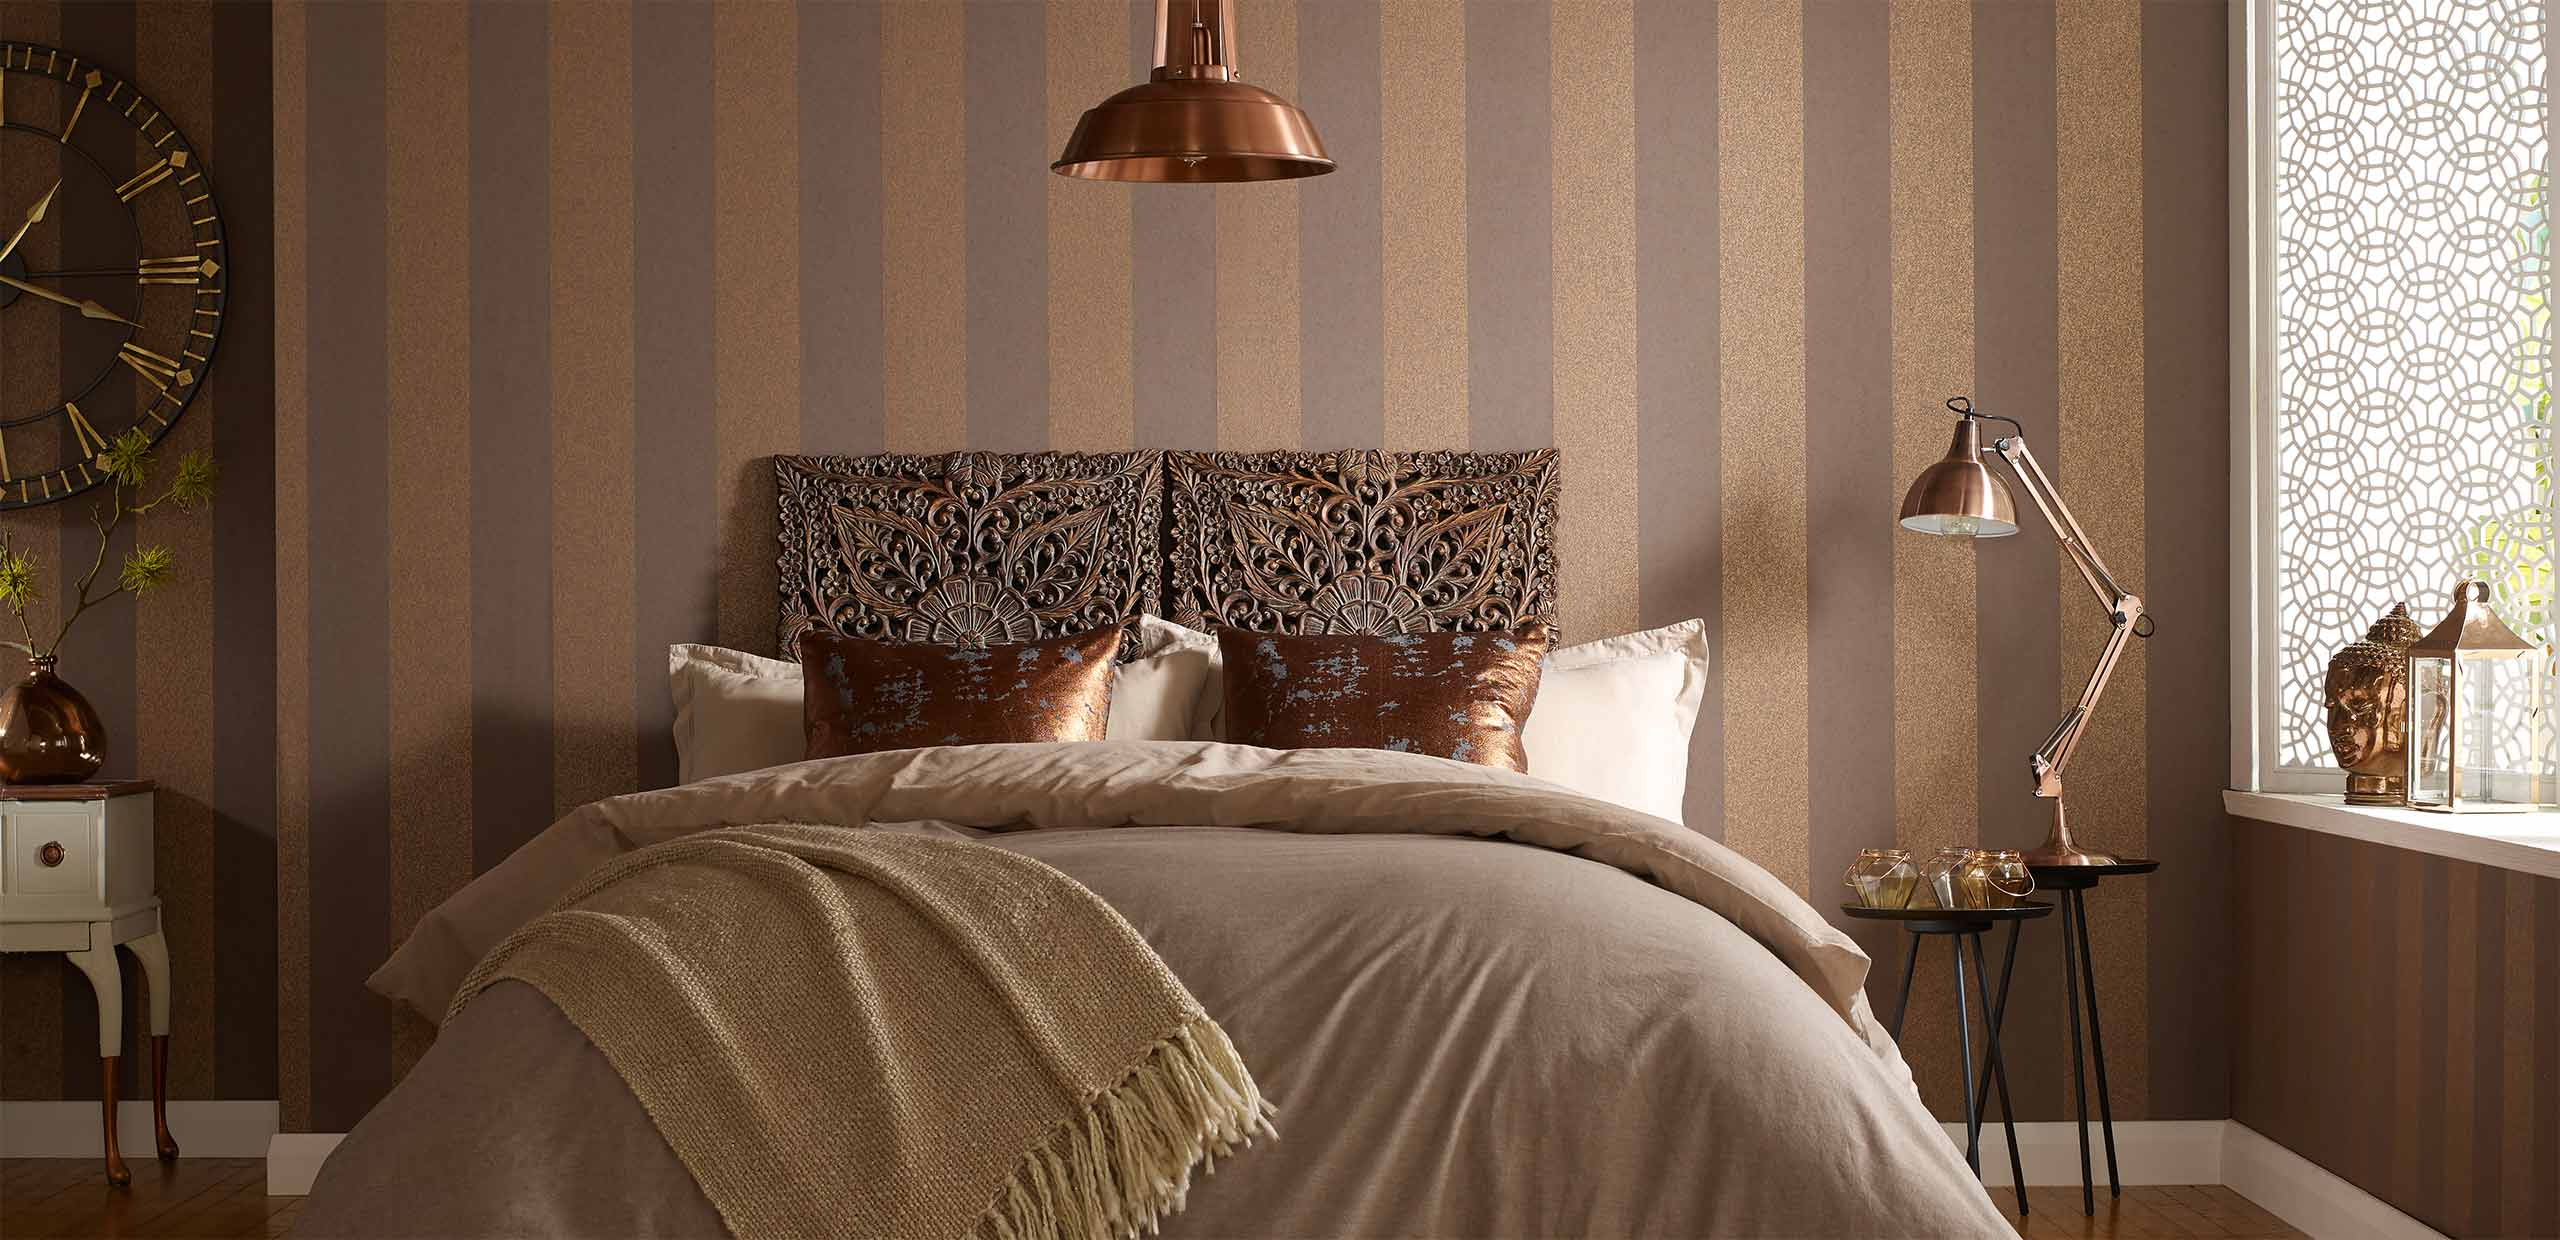 Schlafzimmer Tapezieren Ideen Bedroom Wallpaper | Wall Decor Ideas For Bedrooms